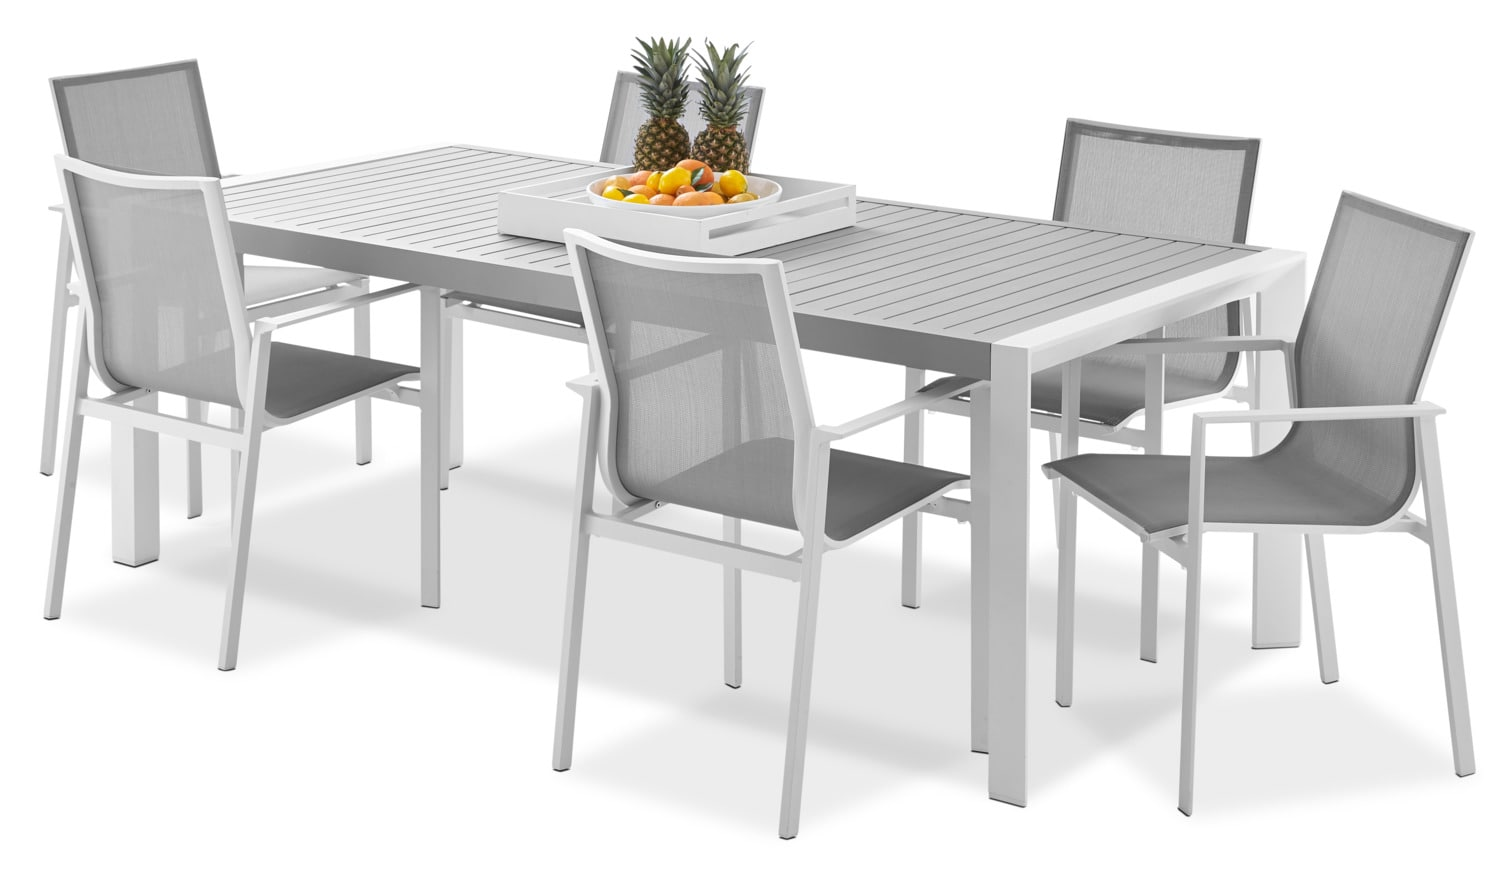 Biscayne 9 Piece Outdoor Dining Set